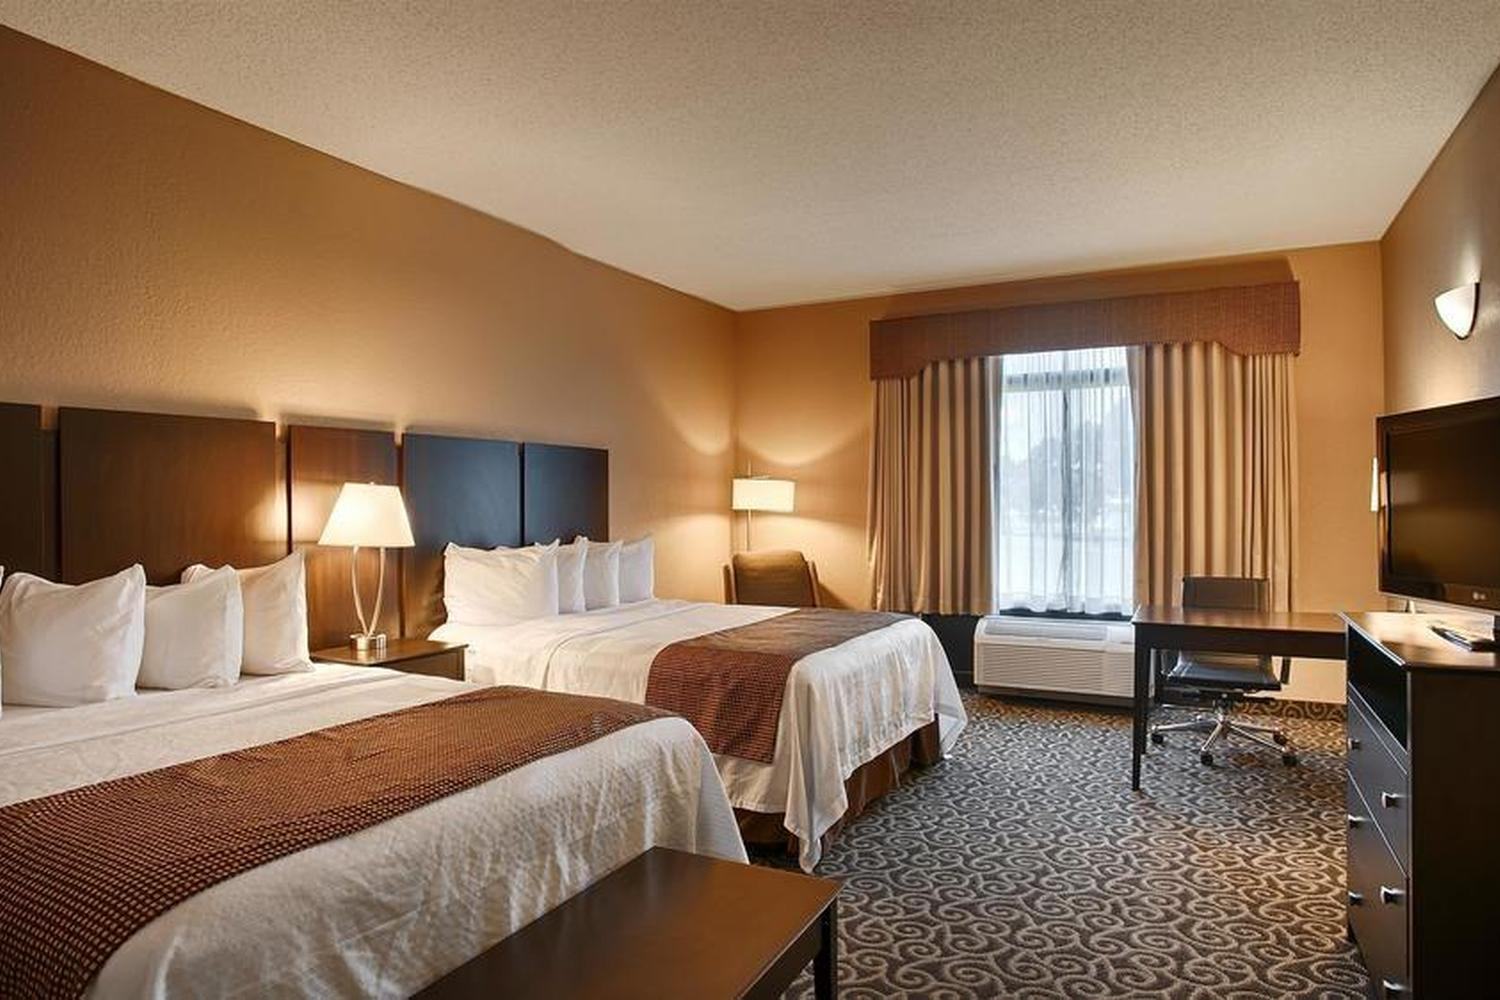 Best Western Inn At Coushatta Pet Policy